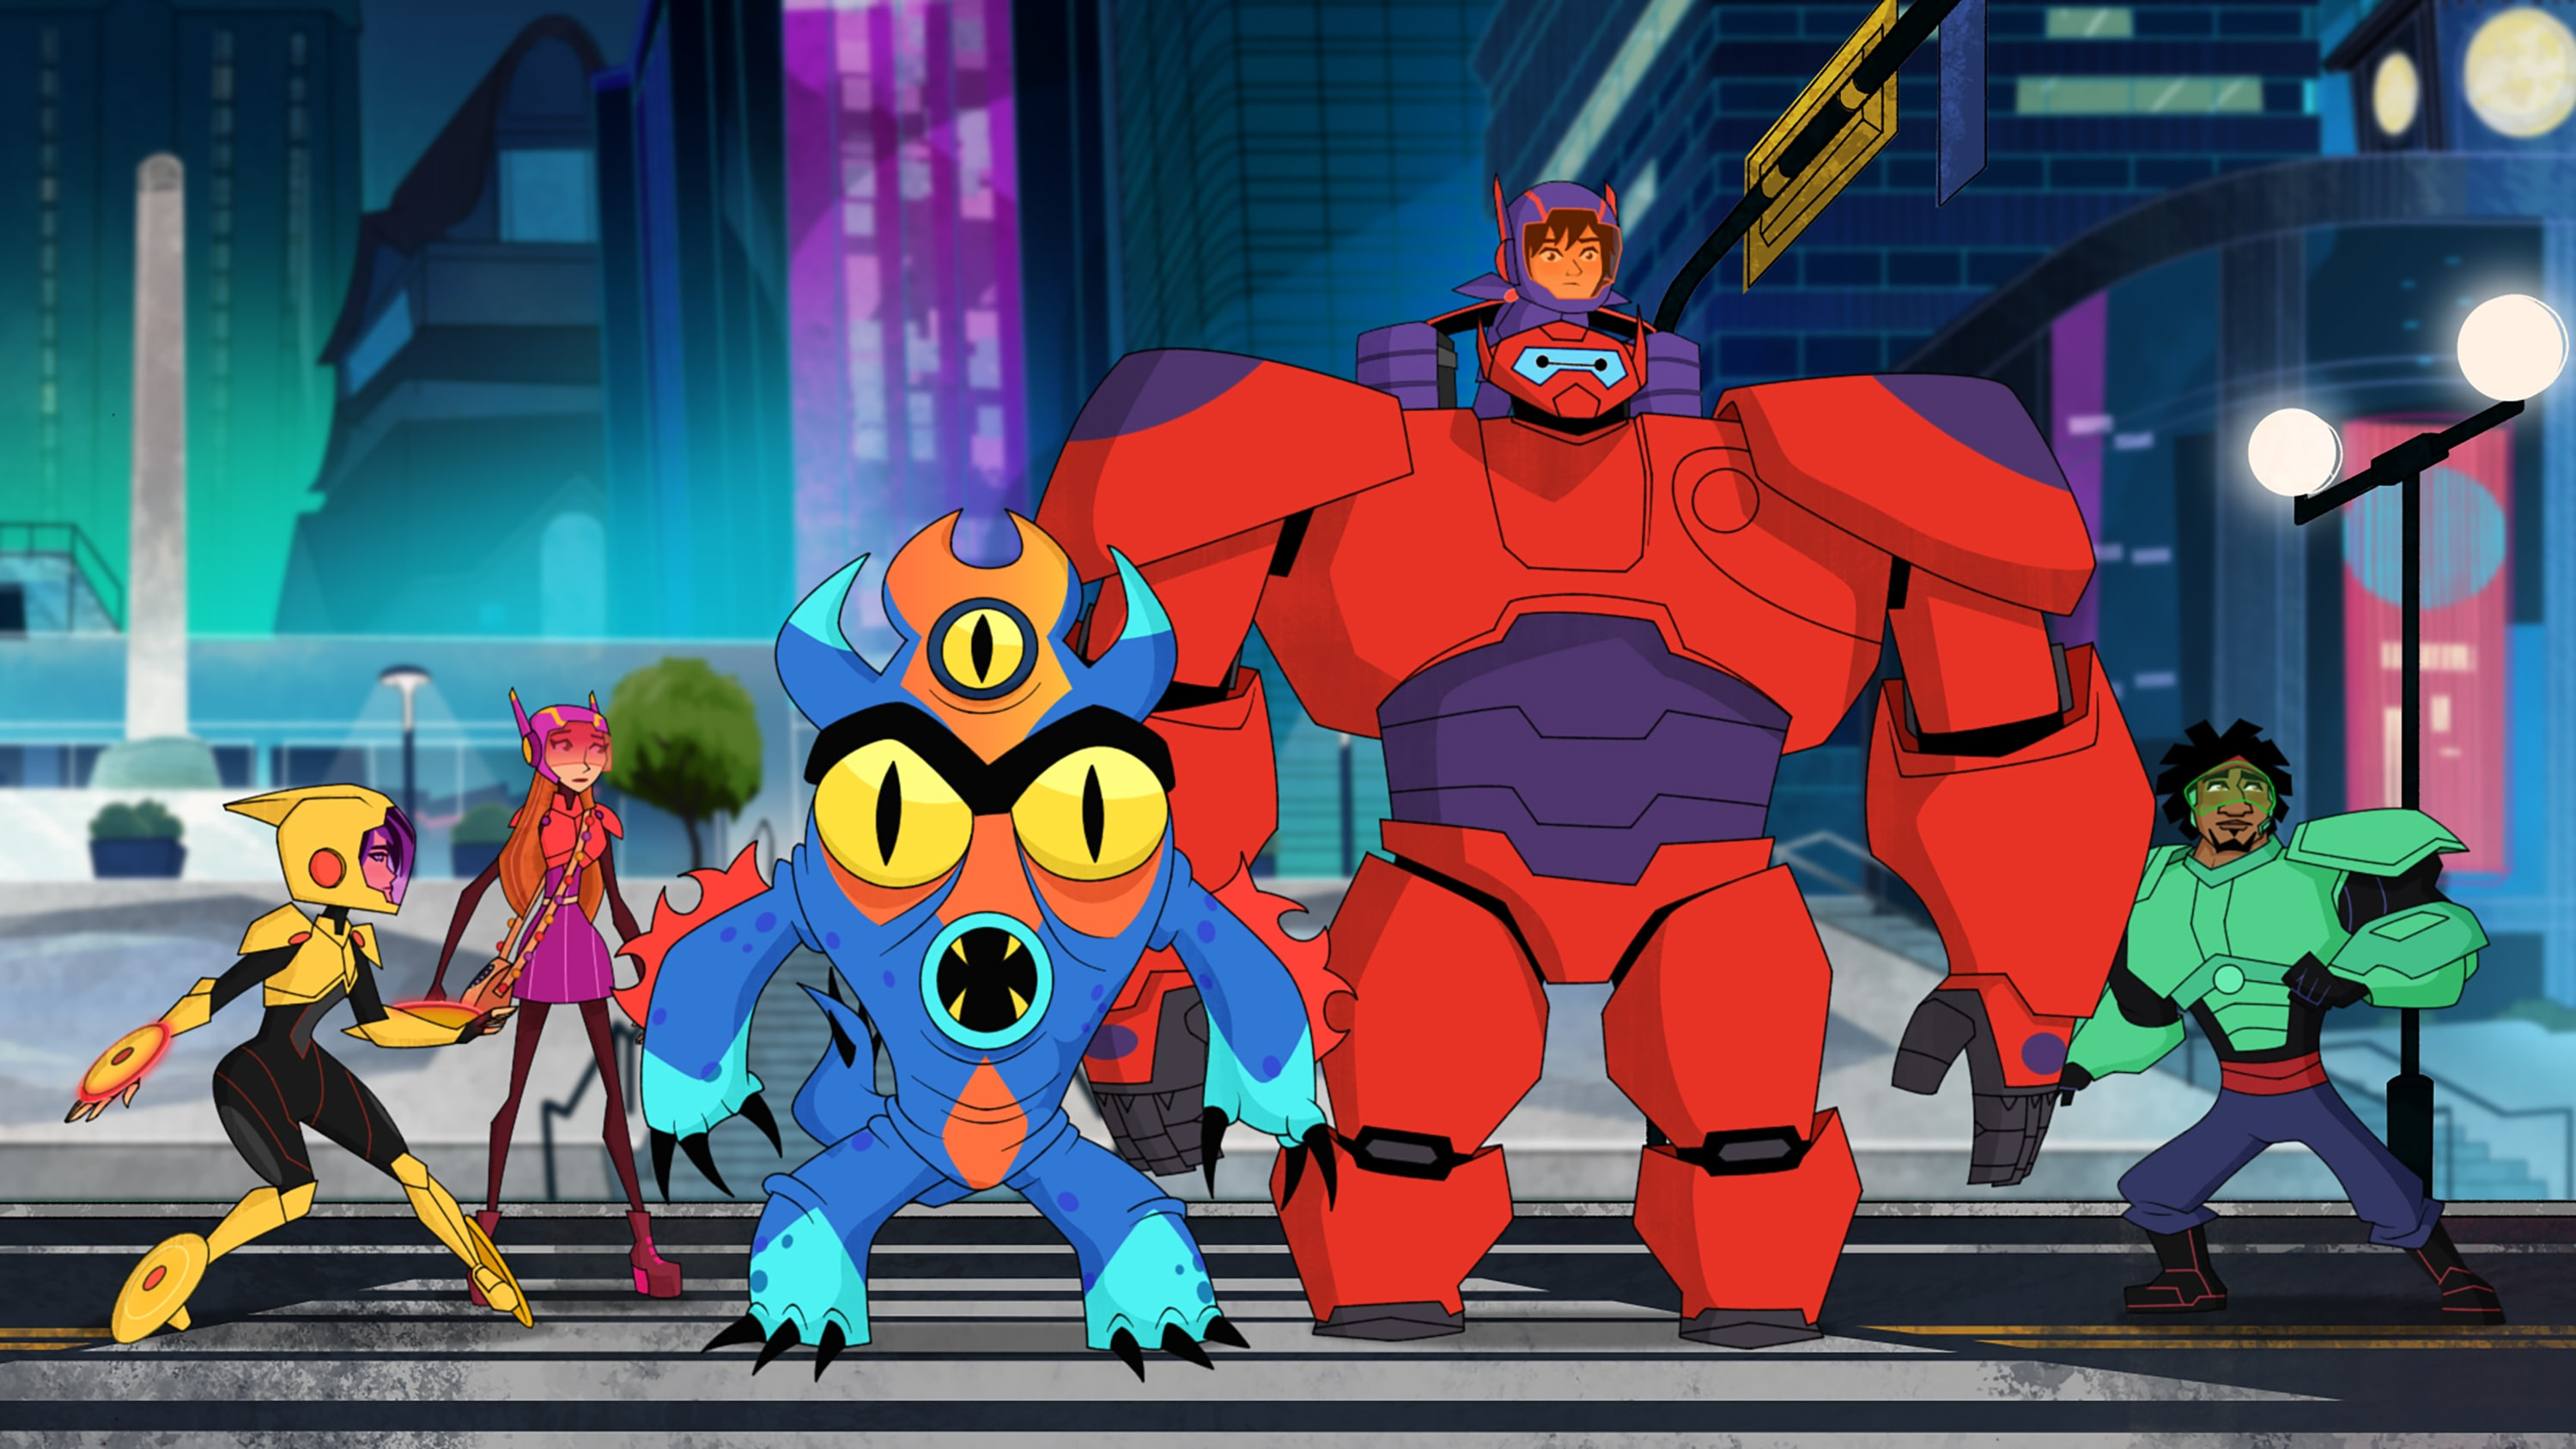 Big Hero 6 The Series showcase image 2